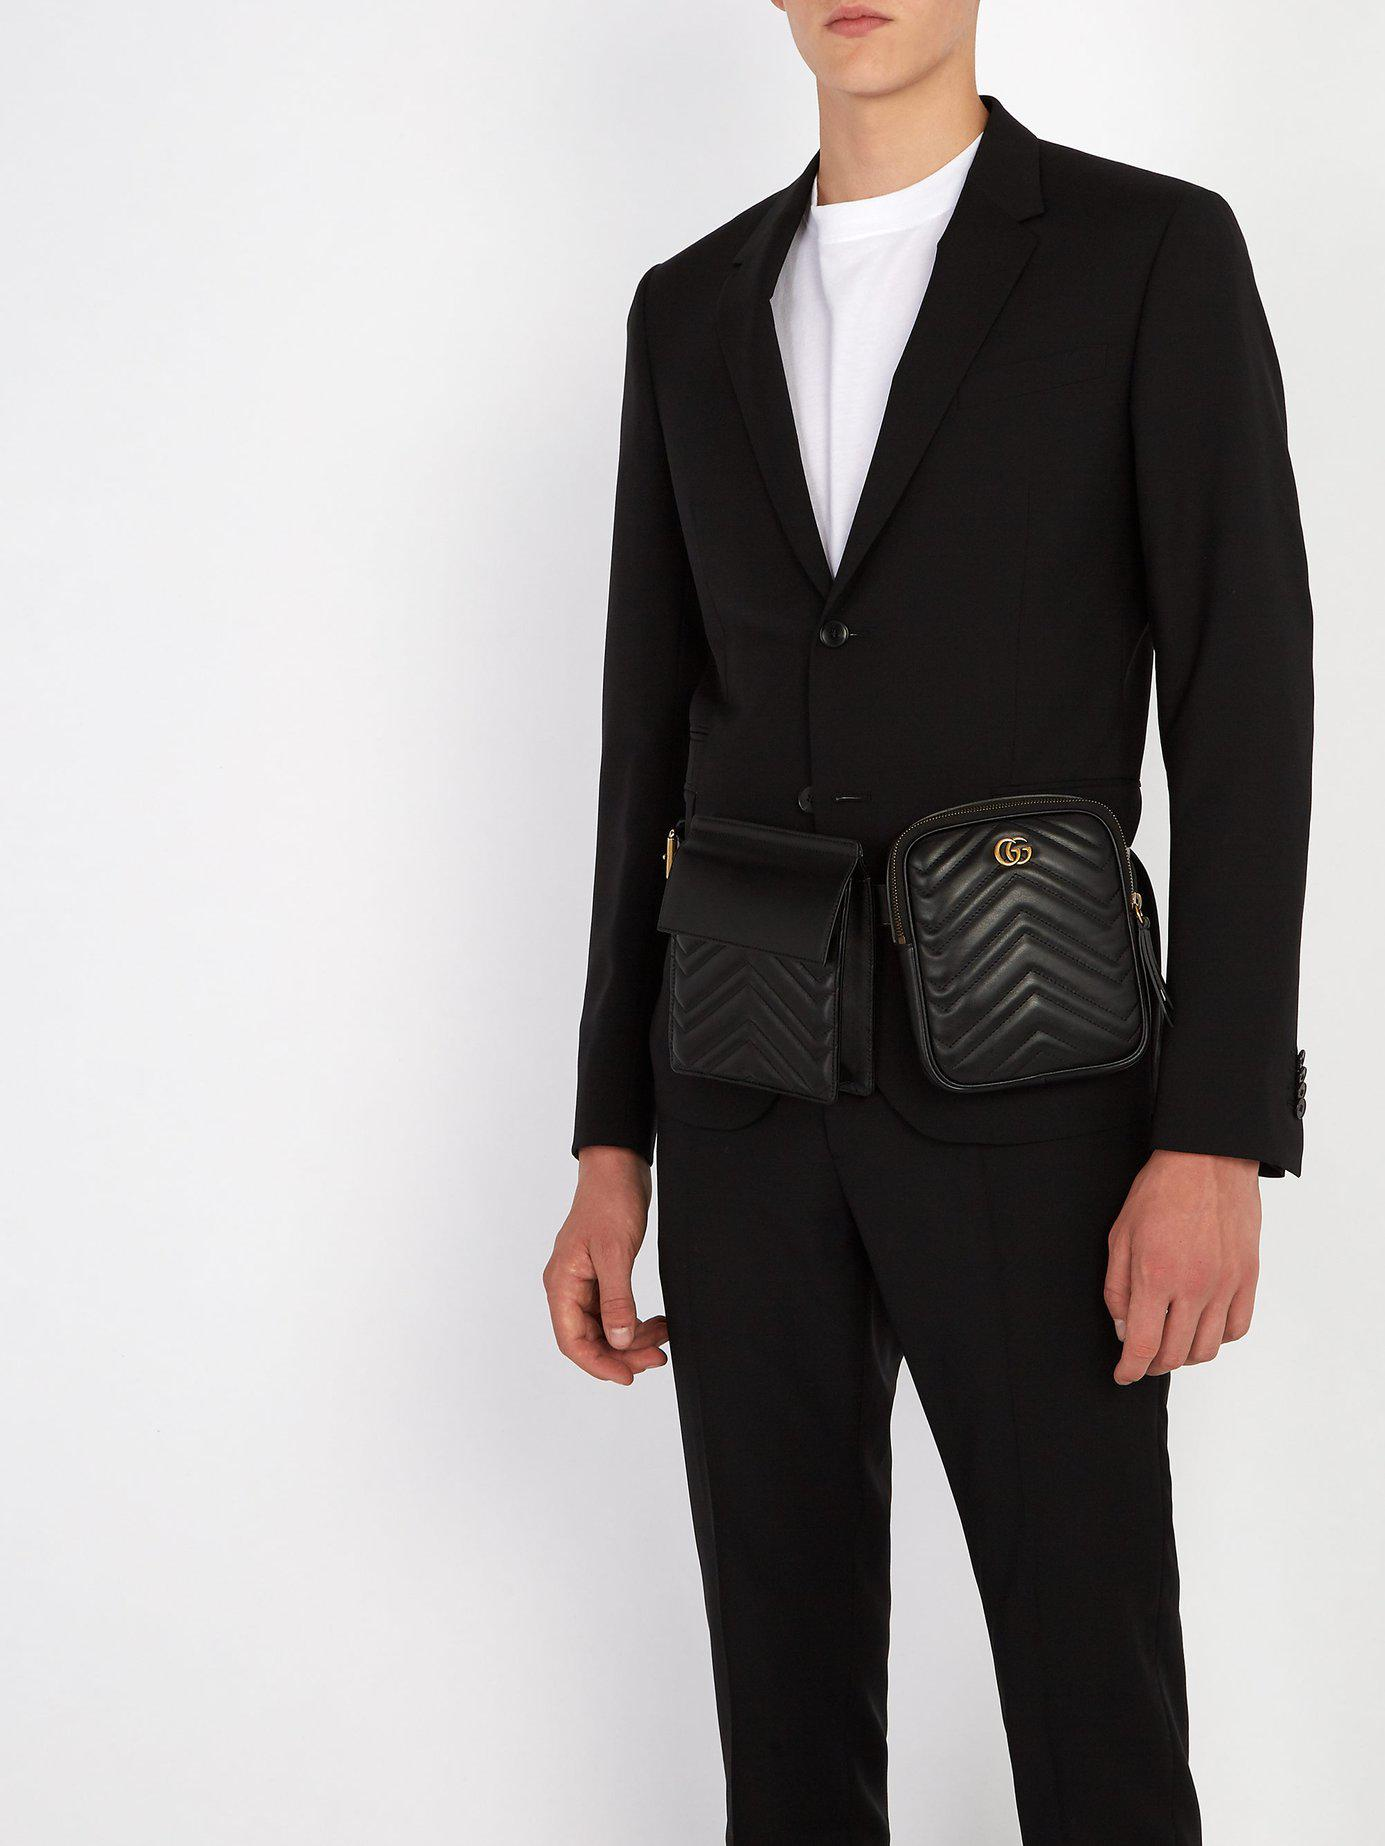 95907758d86 Lyst - Gucci Gg Marmont Leather Belt Bag in Black for Men